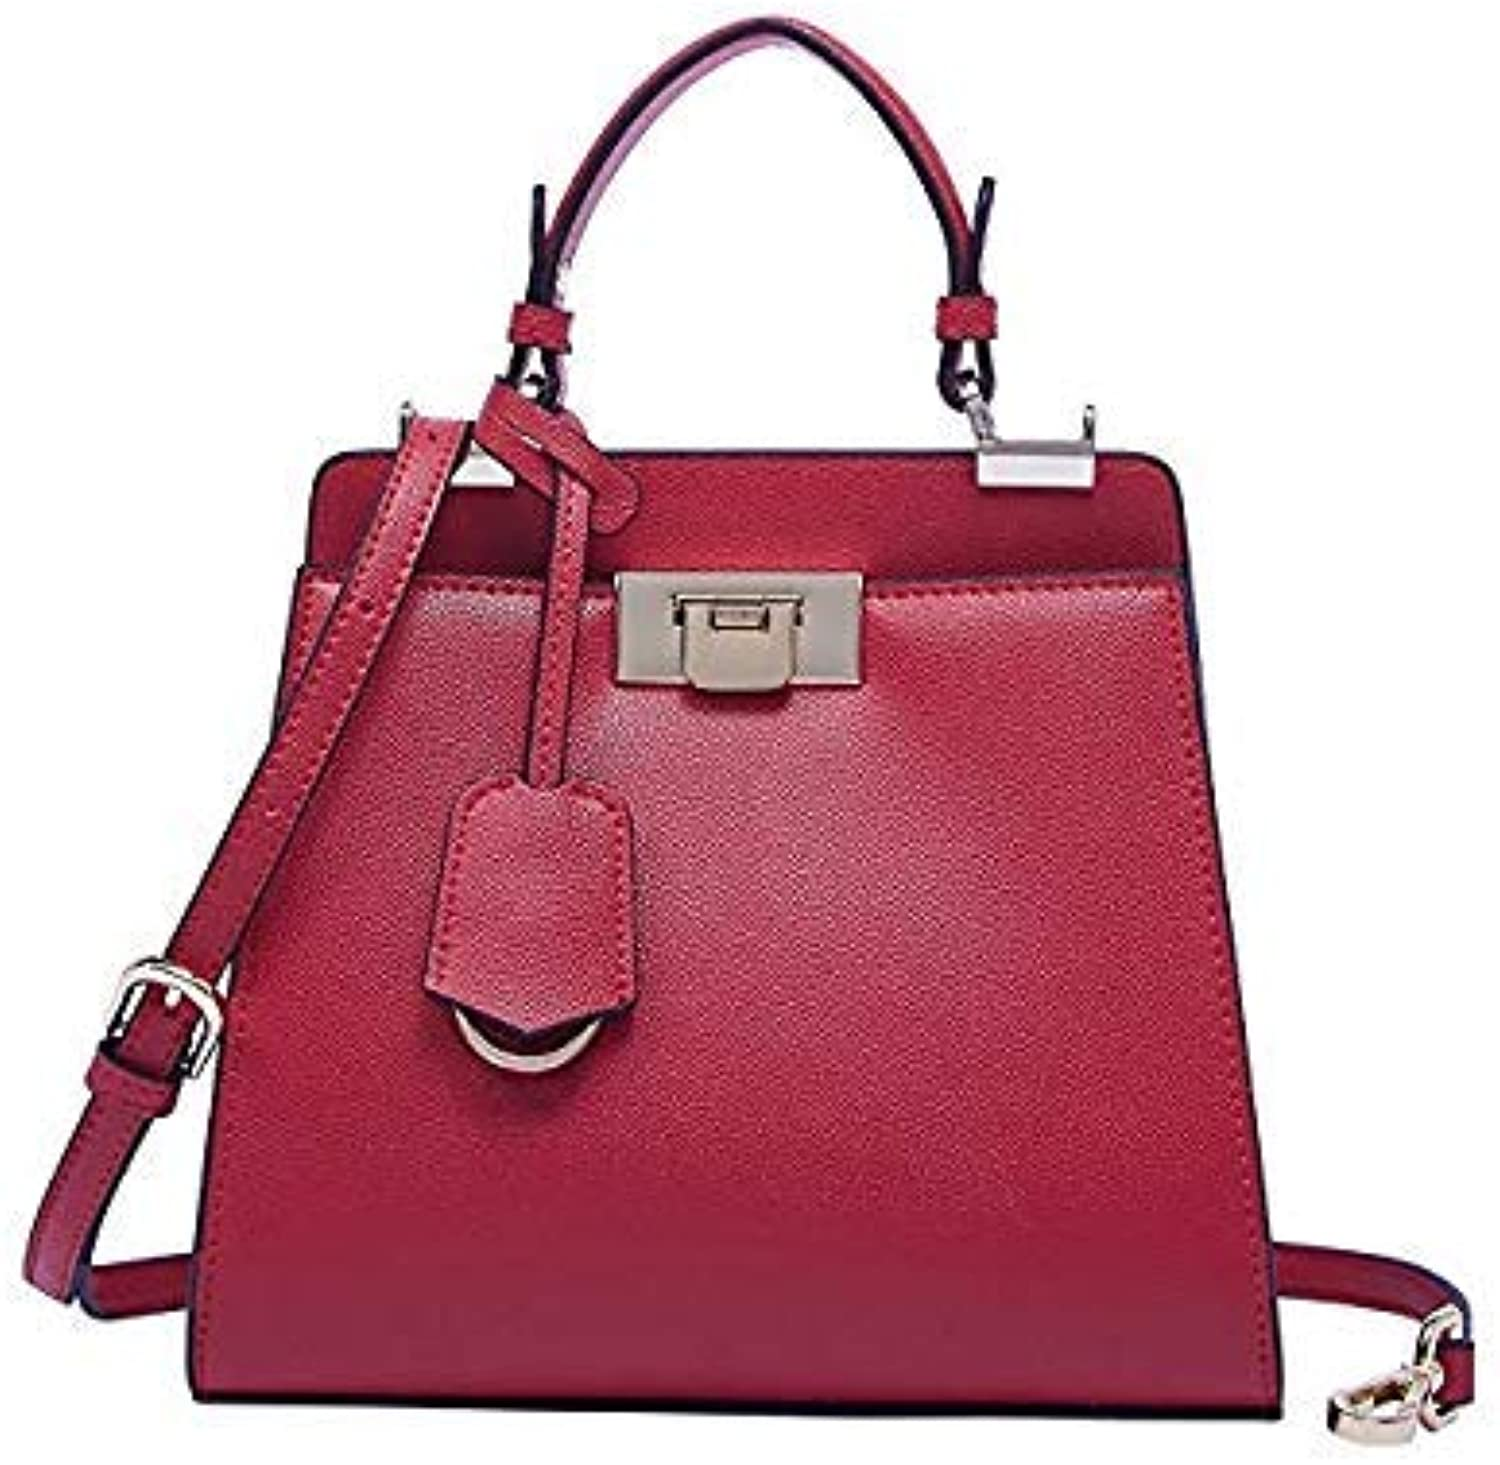 Bloomerang BOYATU Brand Luxury Handbags Women Bag Designer Handbag Genuine Leather Bags Fashion Newest Shoulder Bag Small Tote Two colors color red